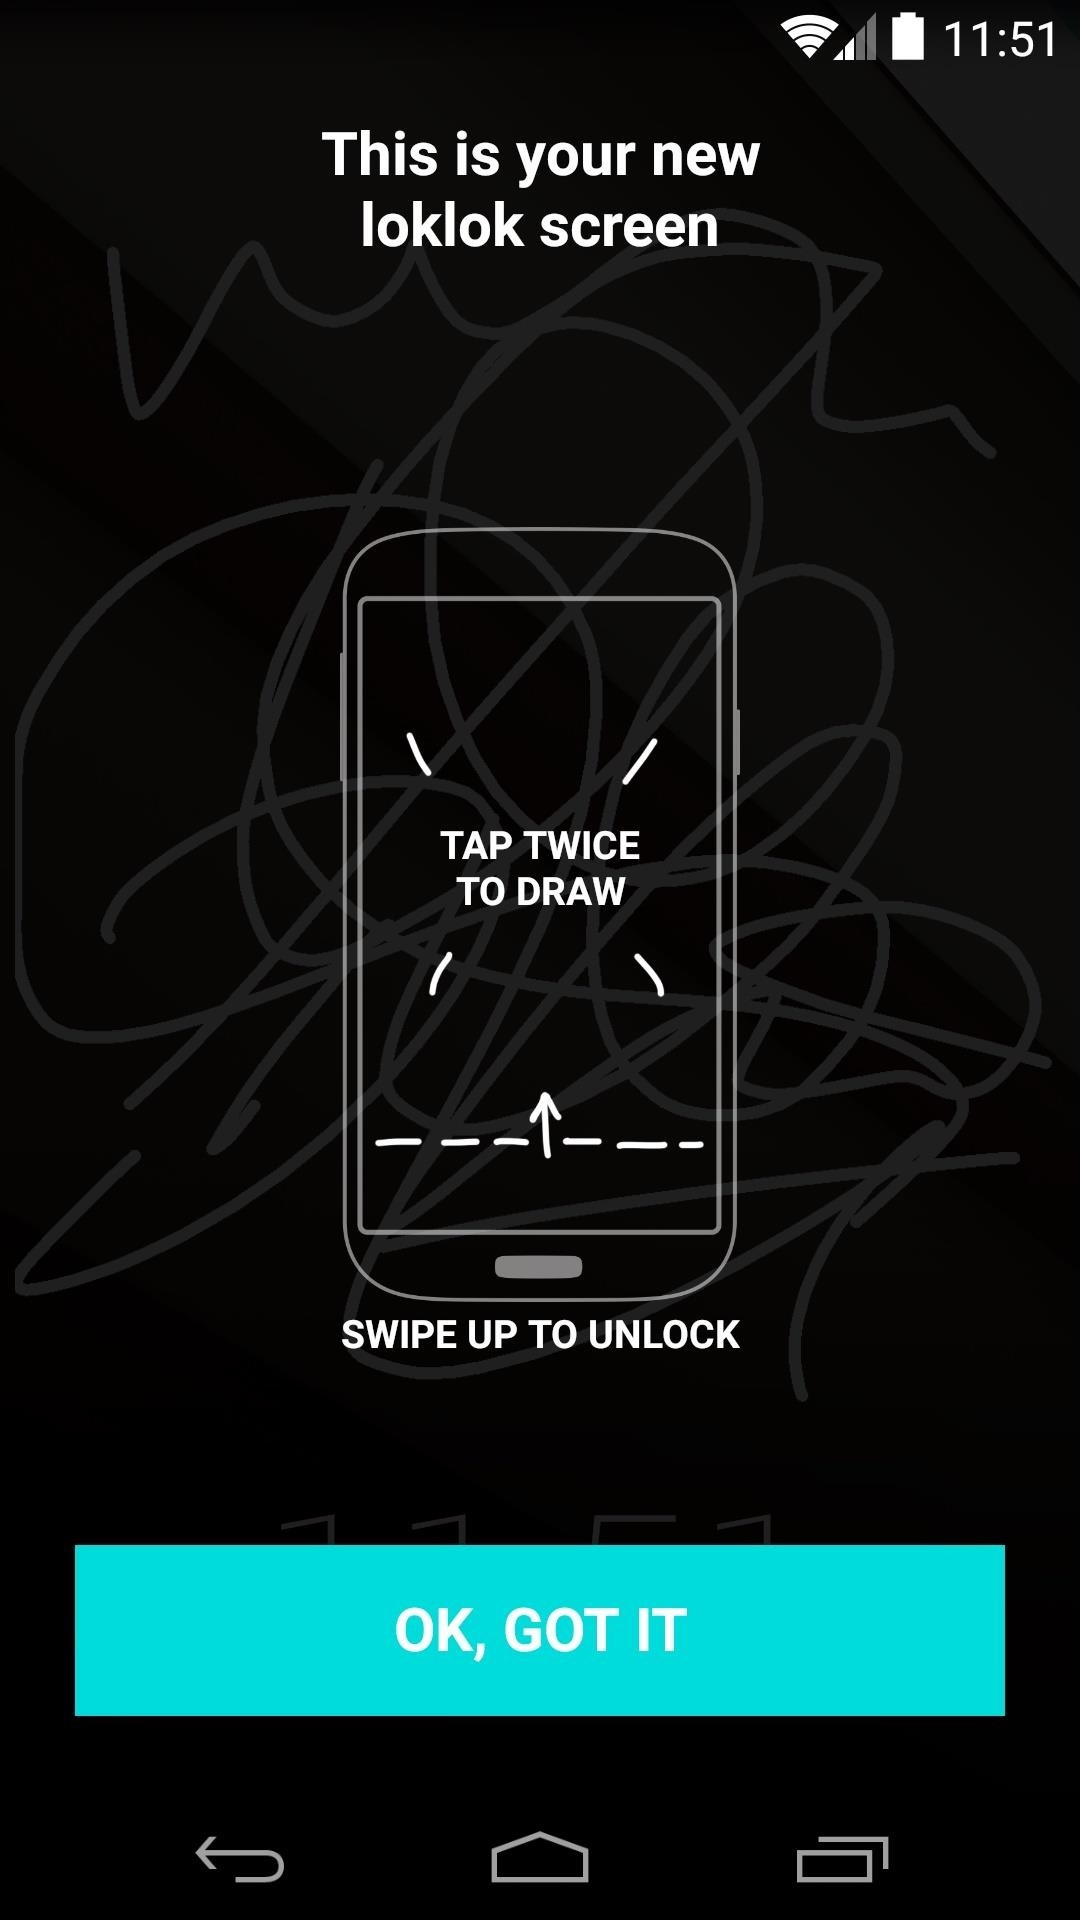 How to Draw & Send Messages to Your Friend's Lock Screen from Your Nexus 5